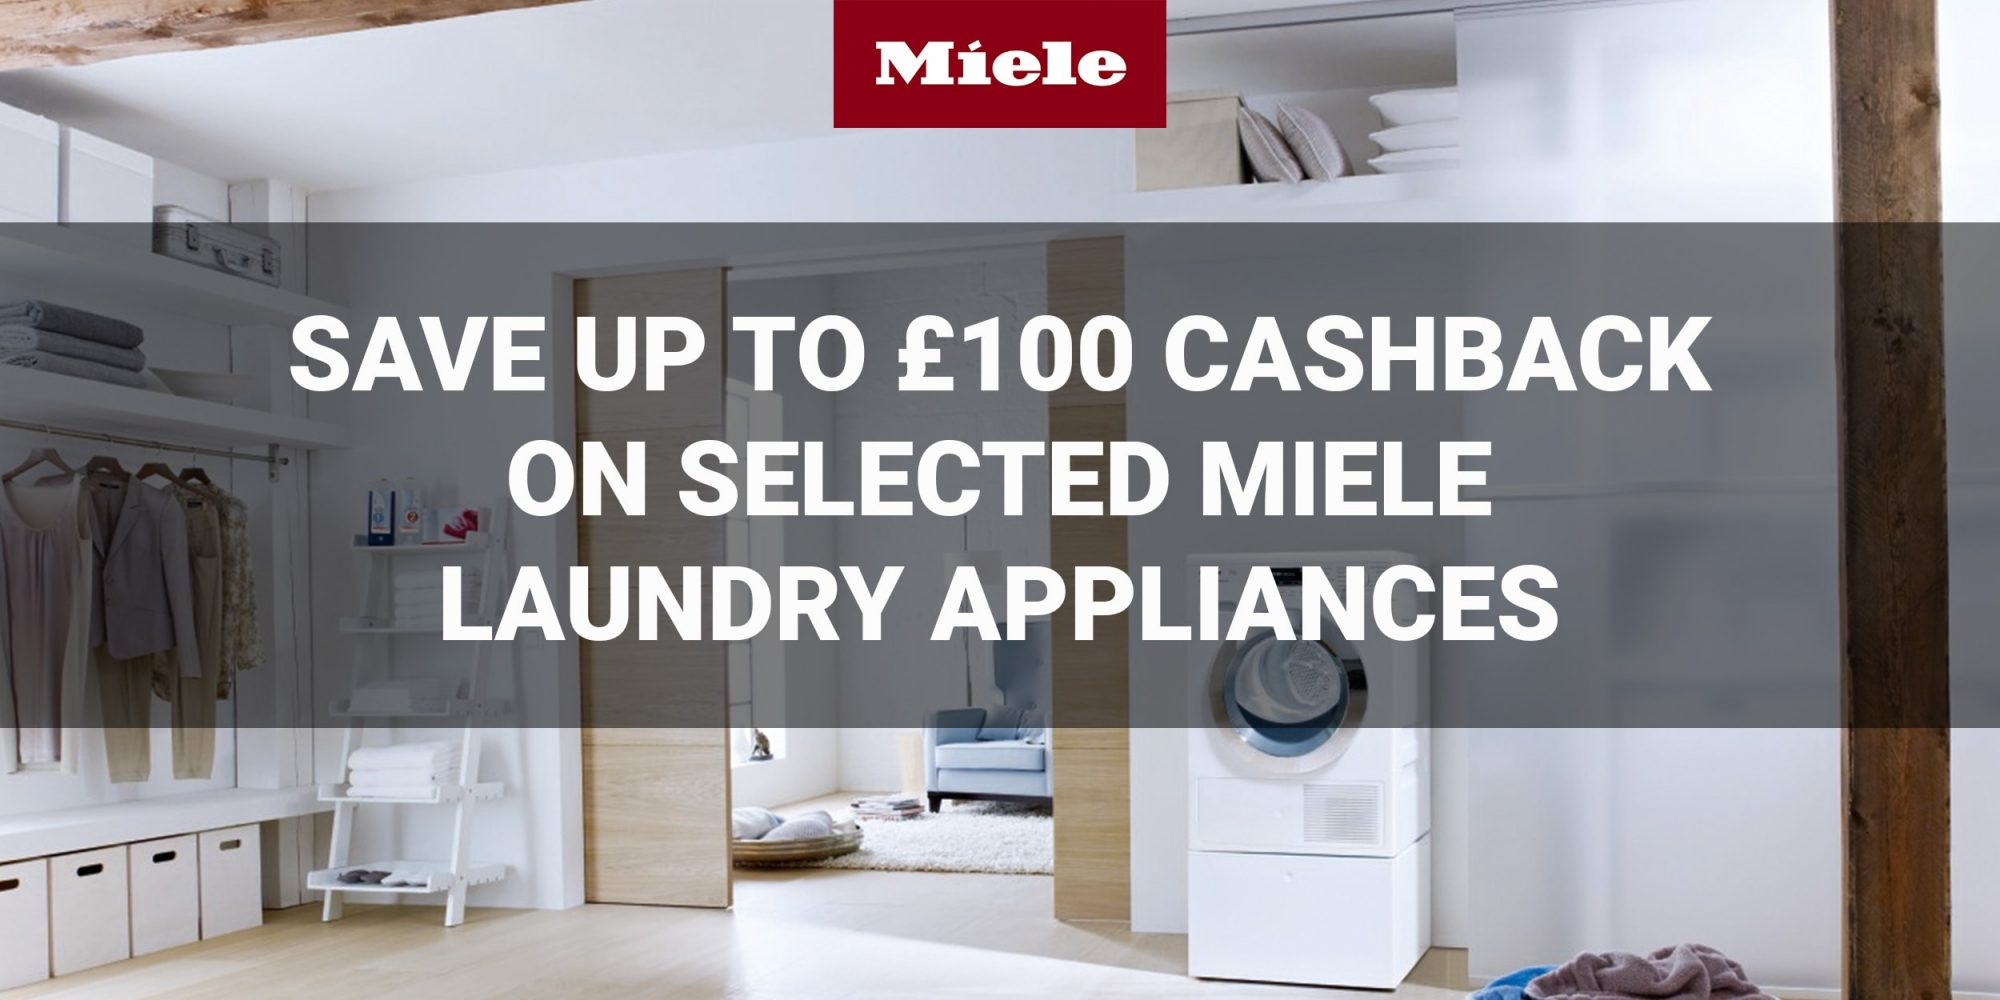 Miele Laundry Cashback Deal